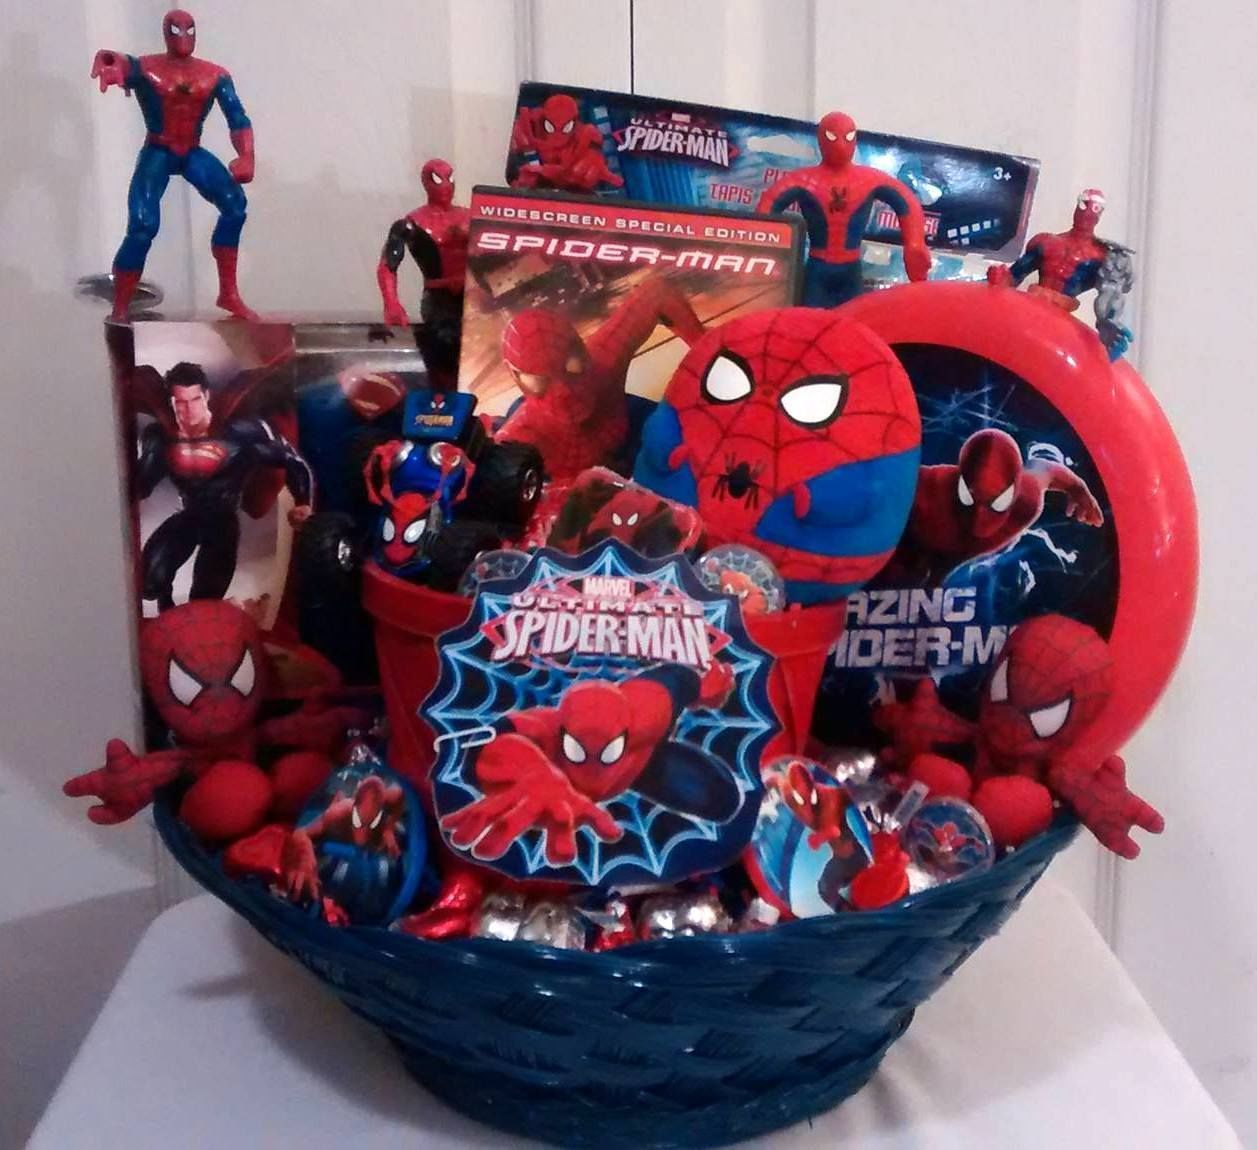 Now 60 sale spiderman blue red kids lg gift basket small where you will find highly unique handmade personalized and custom built gift basket creations for anyone and any occasion negle Images